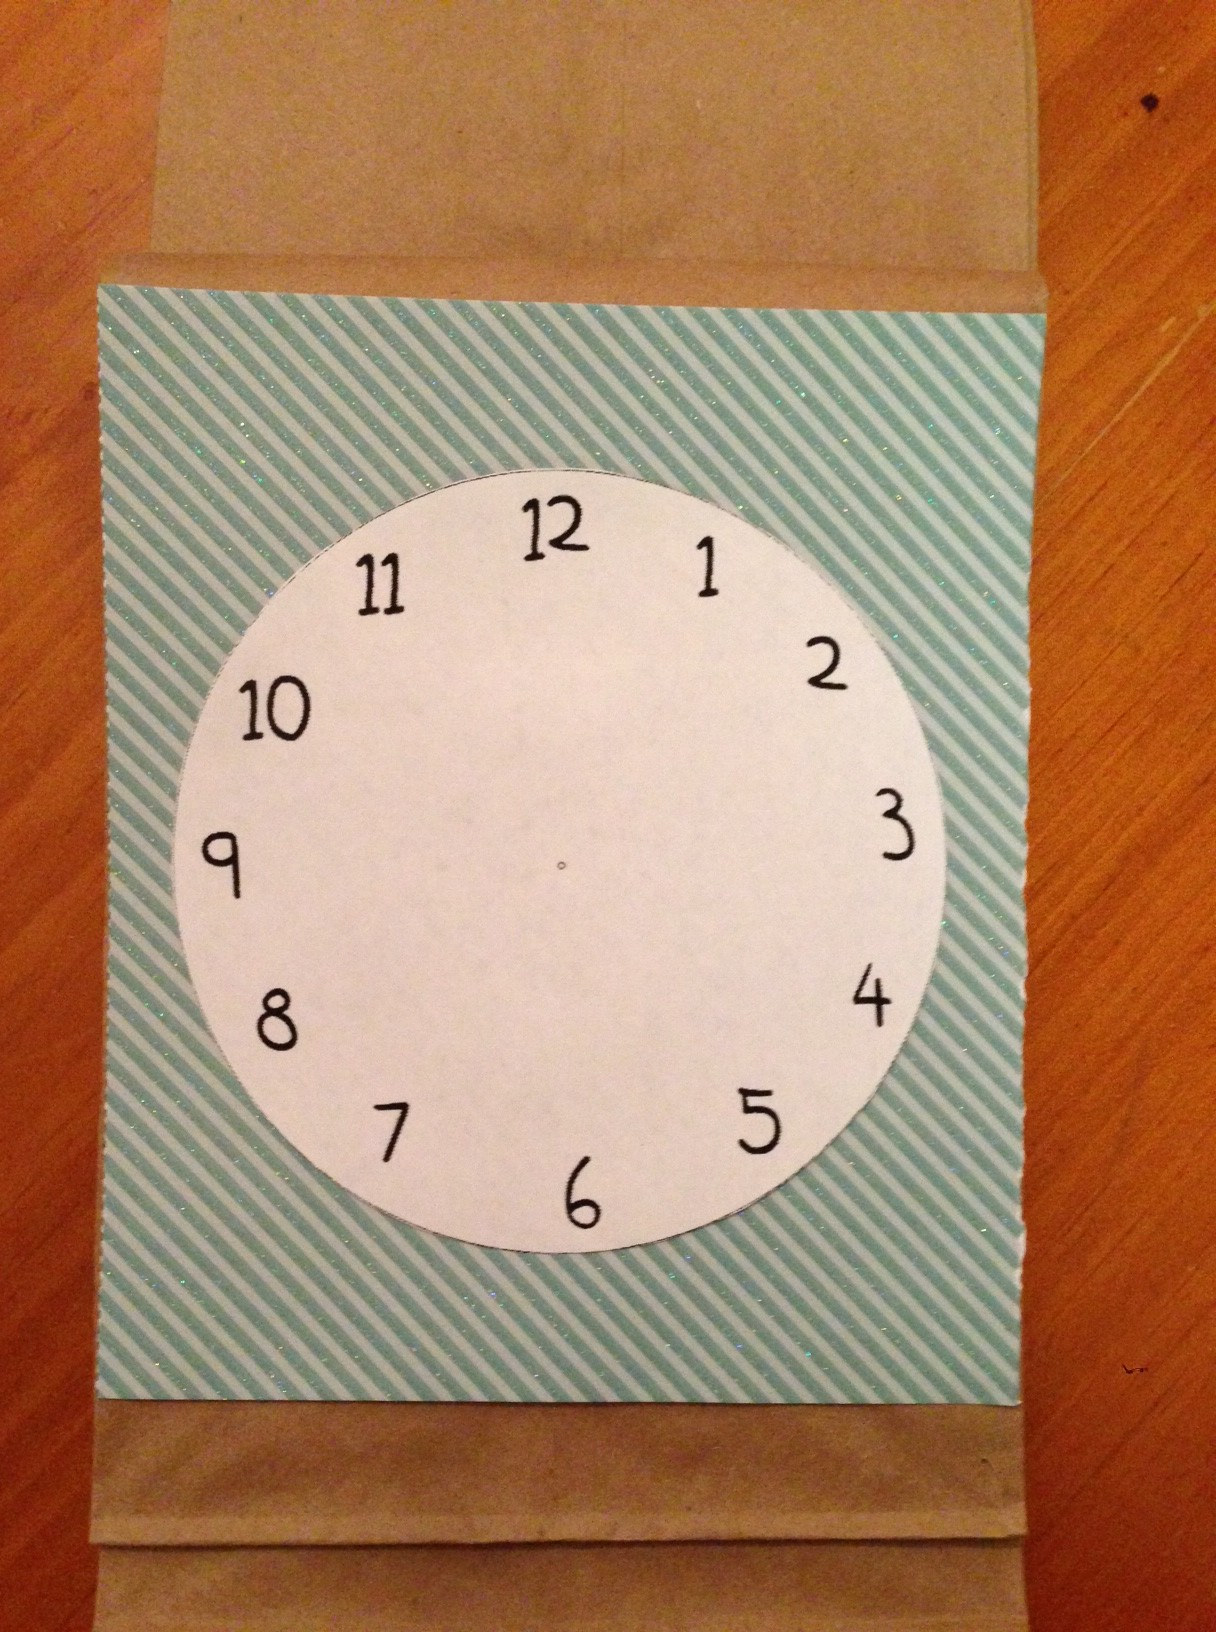 Attach One Of The Blank Clock Templates To The Middle Of The Card Stock.